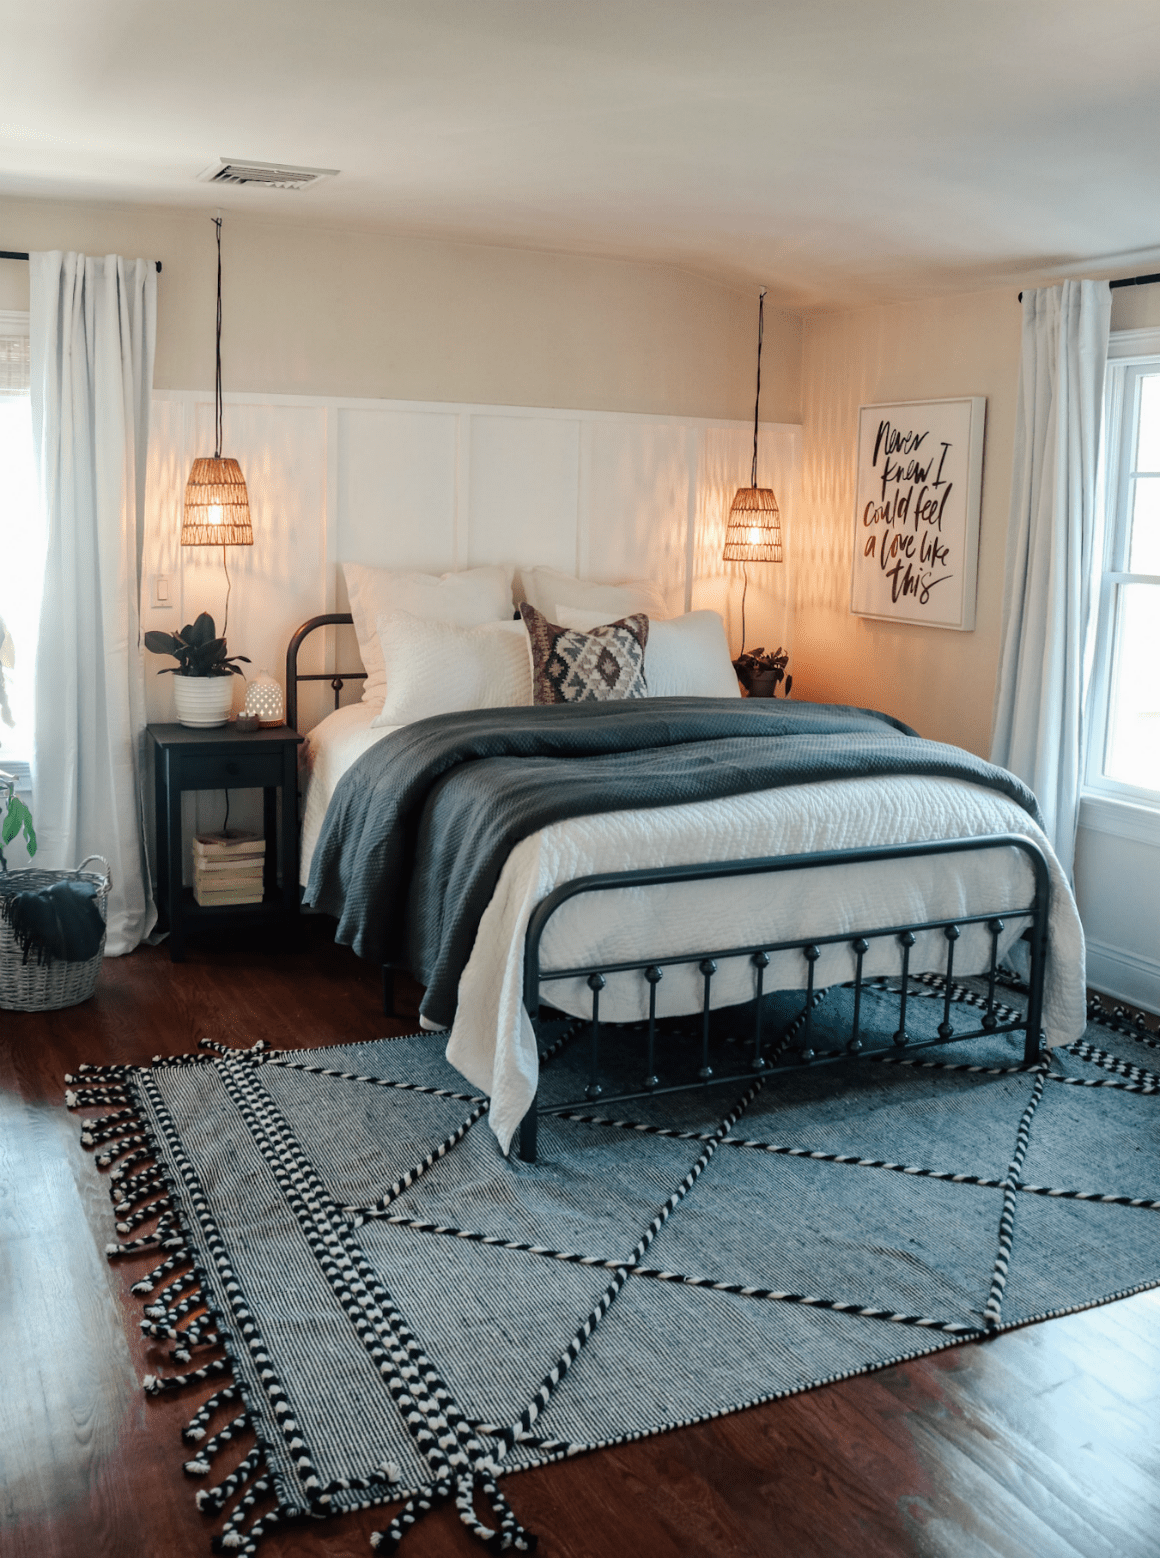 Simple and Affordable Master Bedroom Makeover | Nesting With Grace | Neutral gray, black and white bedroom update with woven basket lighting and board and batten wall. #bedroom #masterbedroom